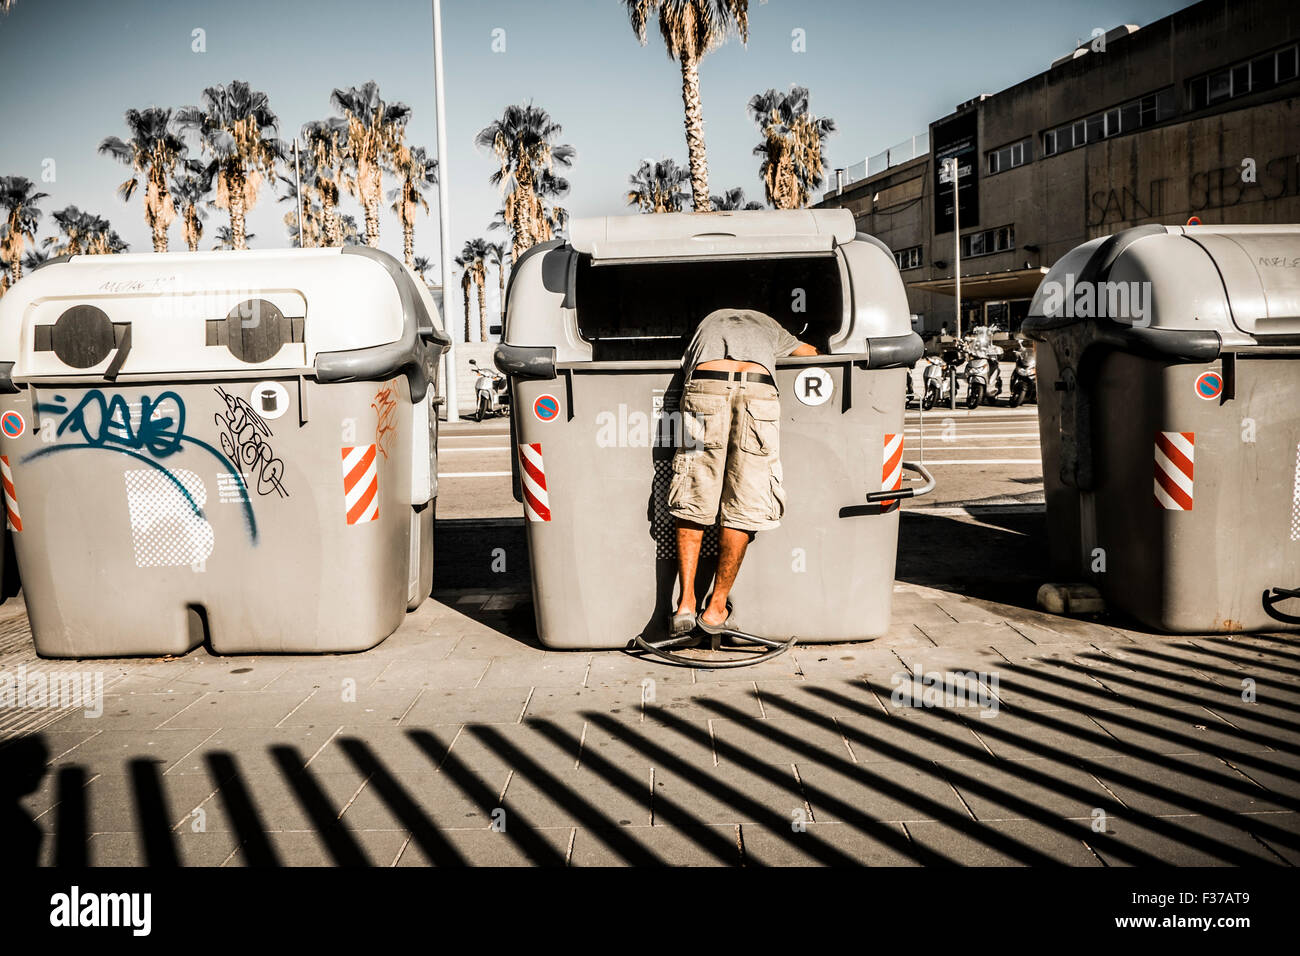 Person looking into a garbage can, unemployment, Barcelona, Spain - Stock Image